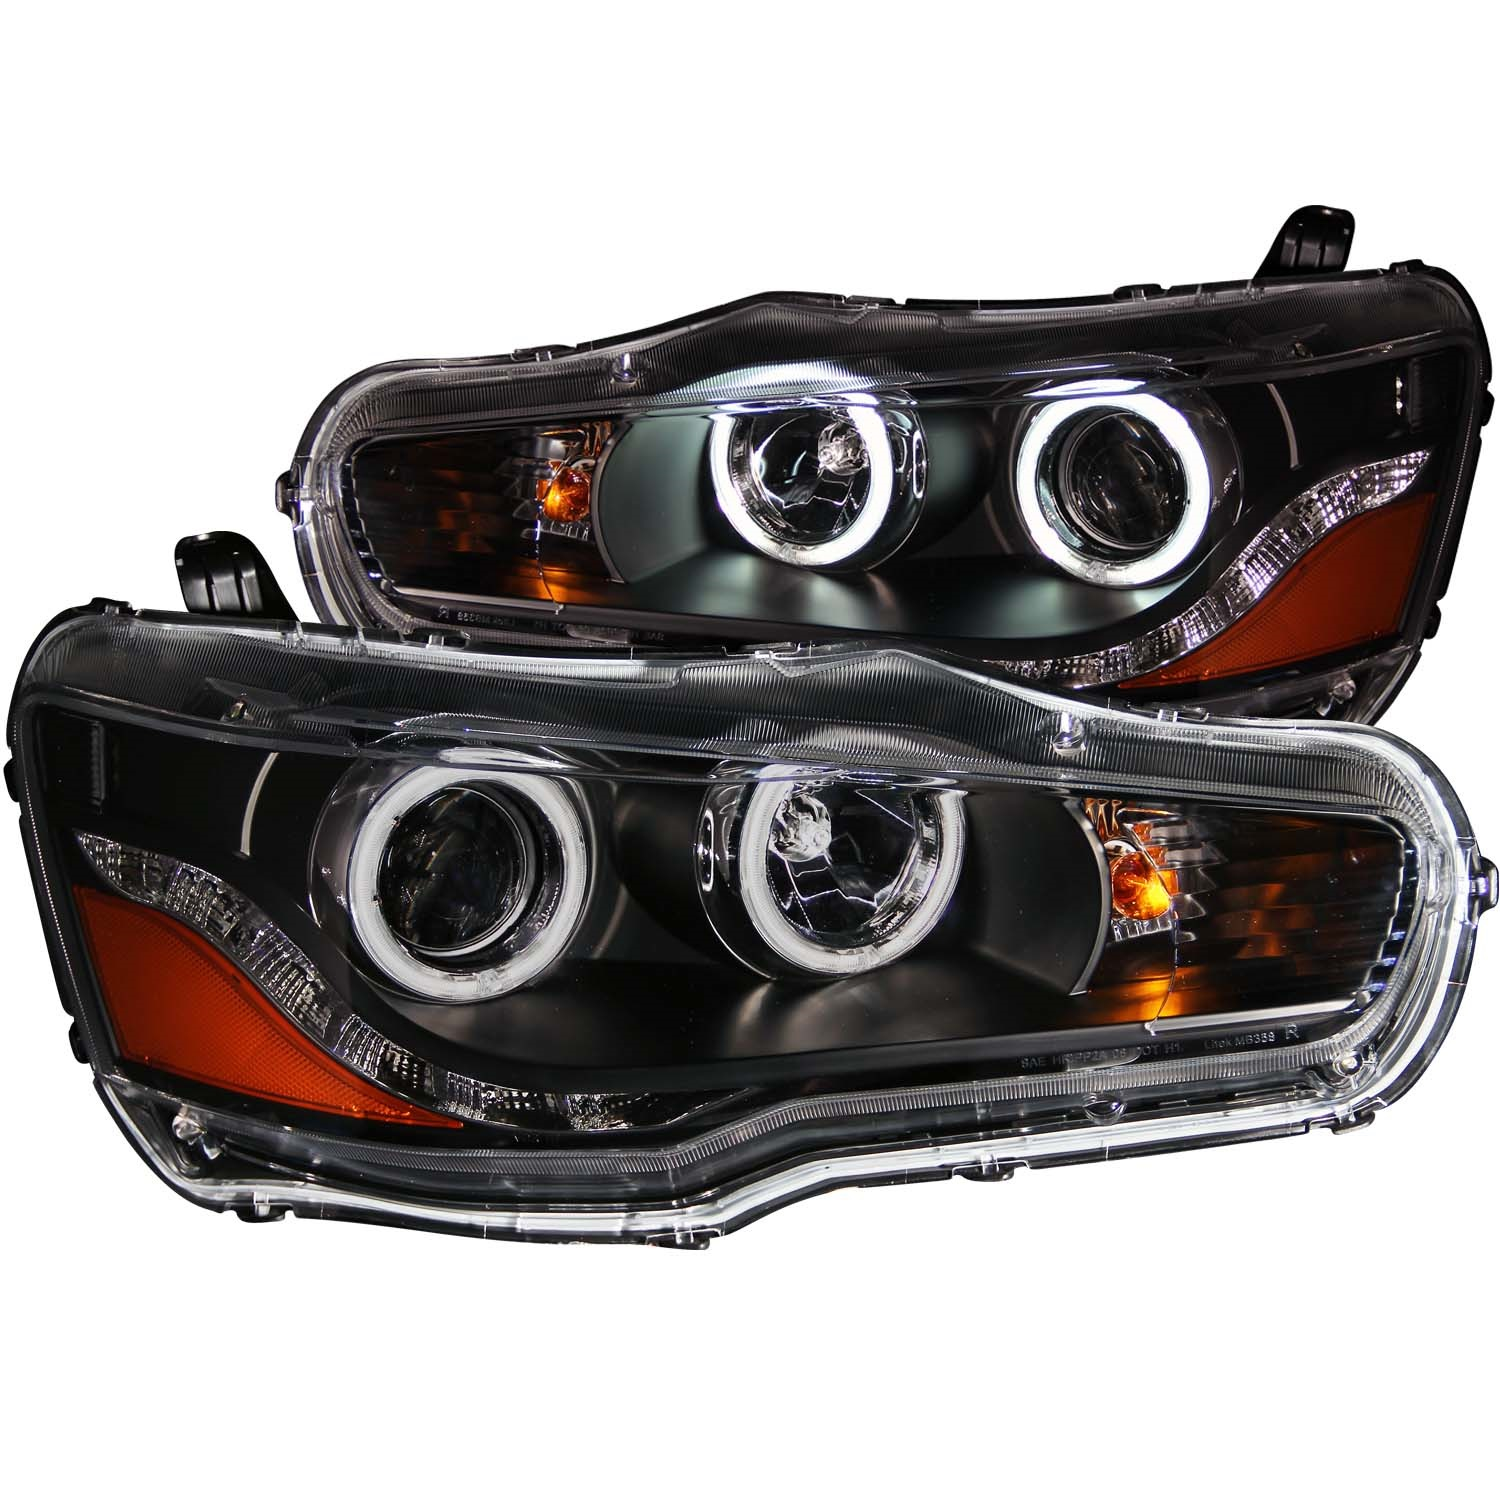 Anzo USA 121428 Projector Headlight Set w/Halo Fits 08-15 Lancer